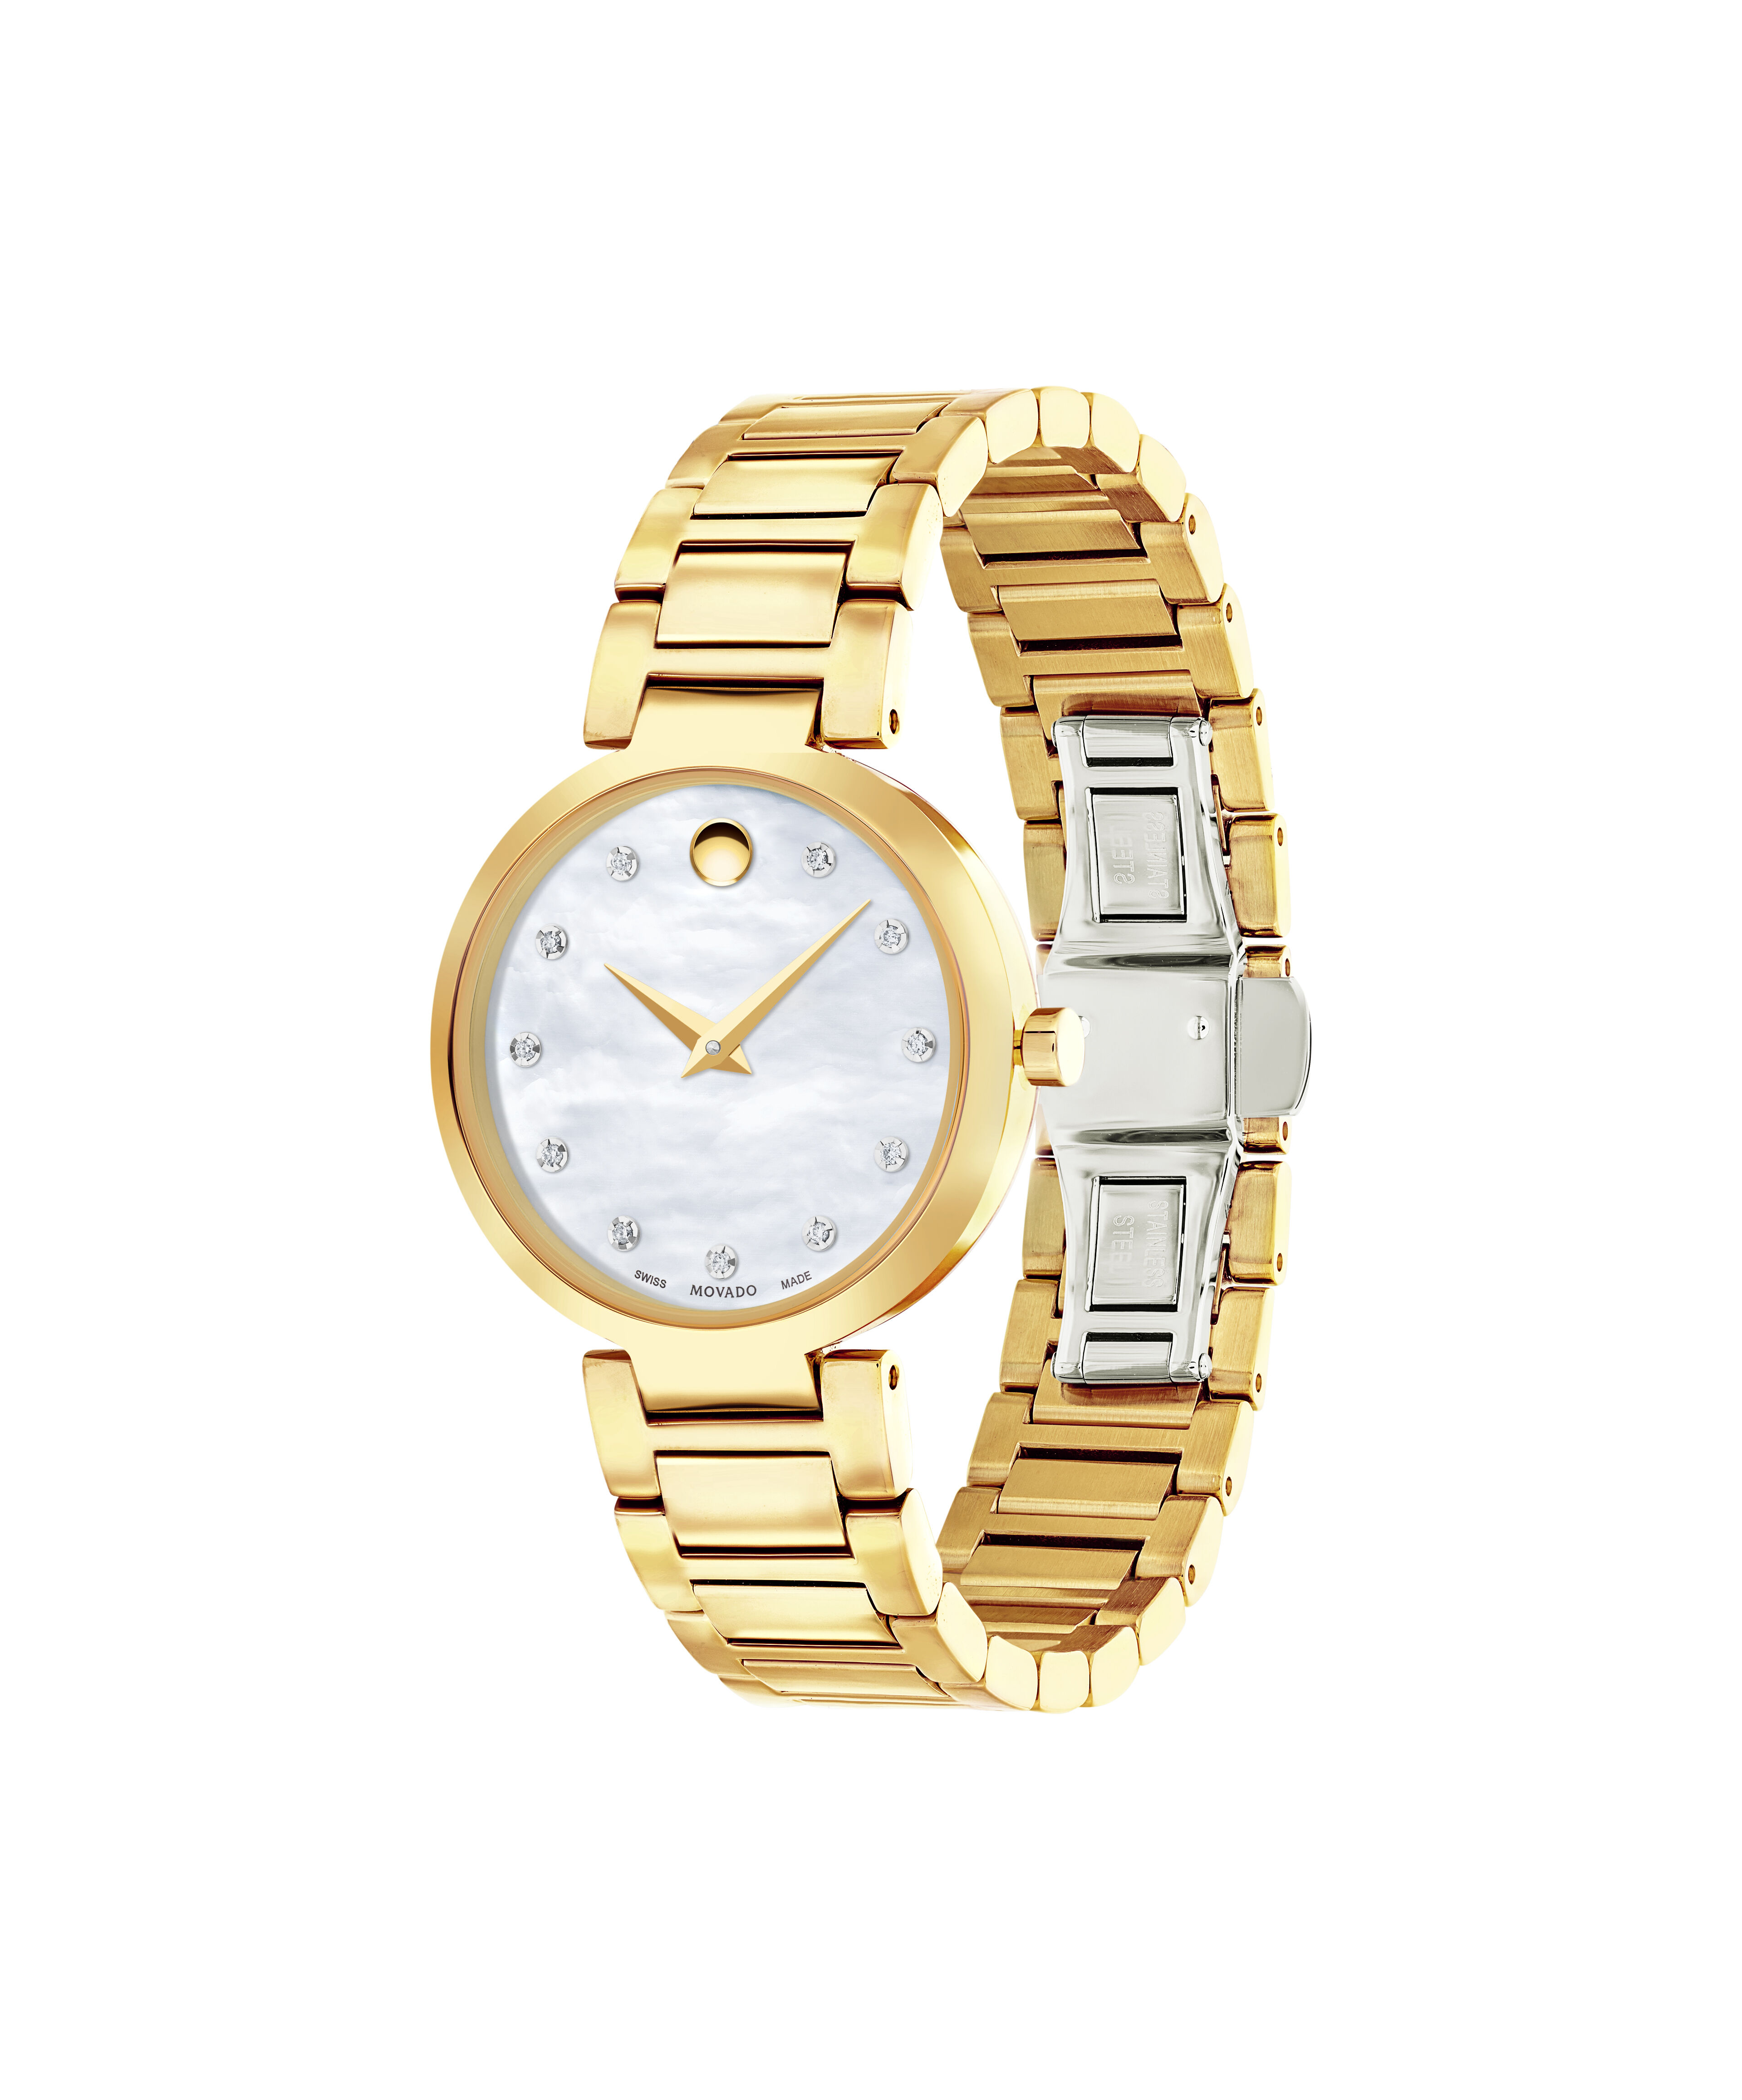 Fake Ladies Tag Watches